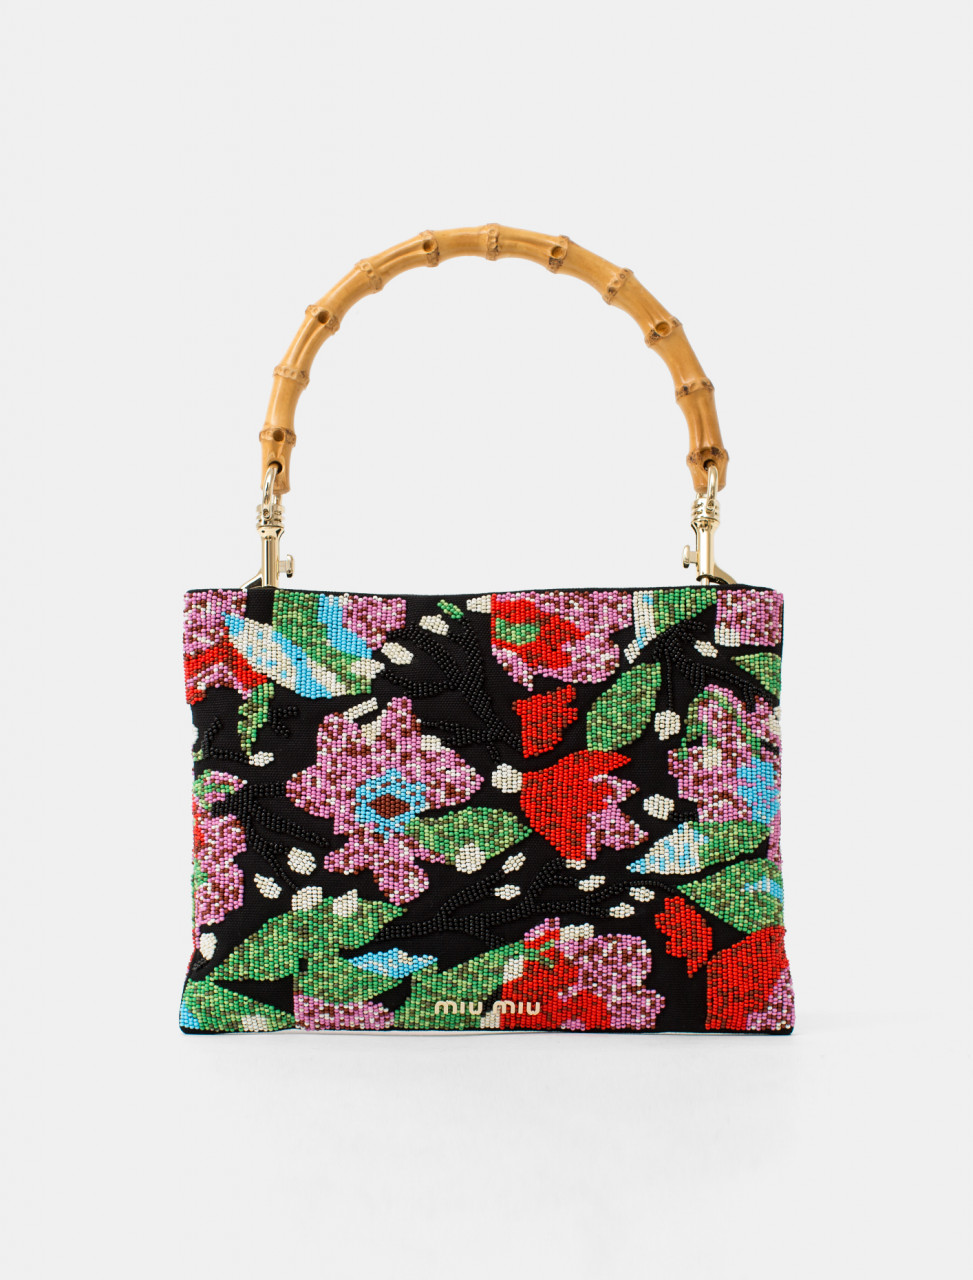 Beaded Floral Handbag with Bamboo Handle